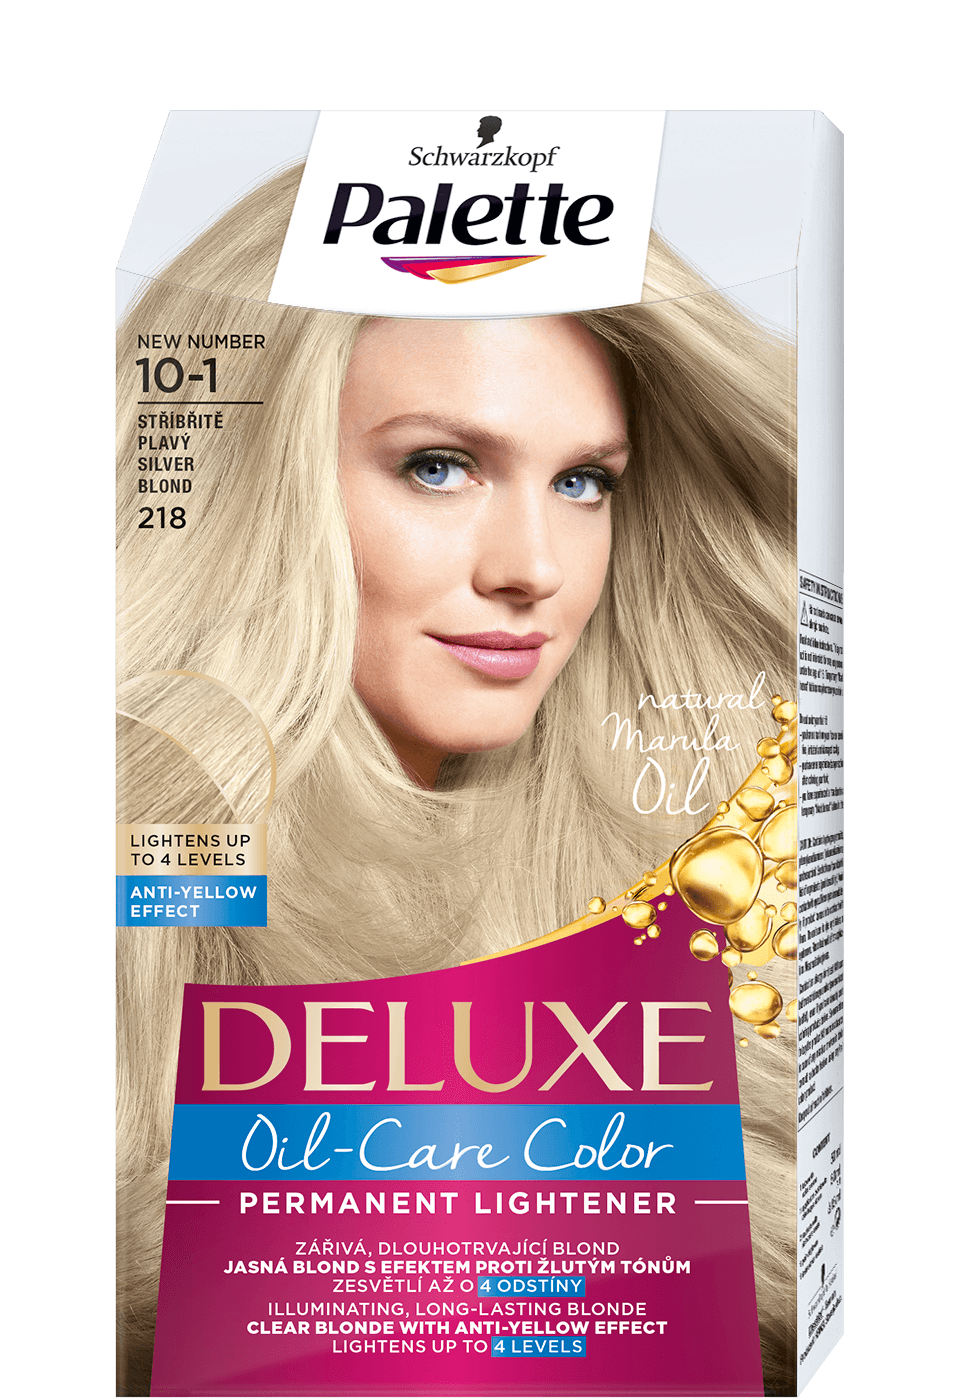 palette_com_deluxe_MeBl_10-1_silver_blonde_970x1400